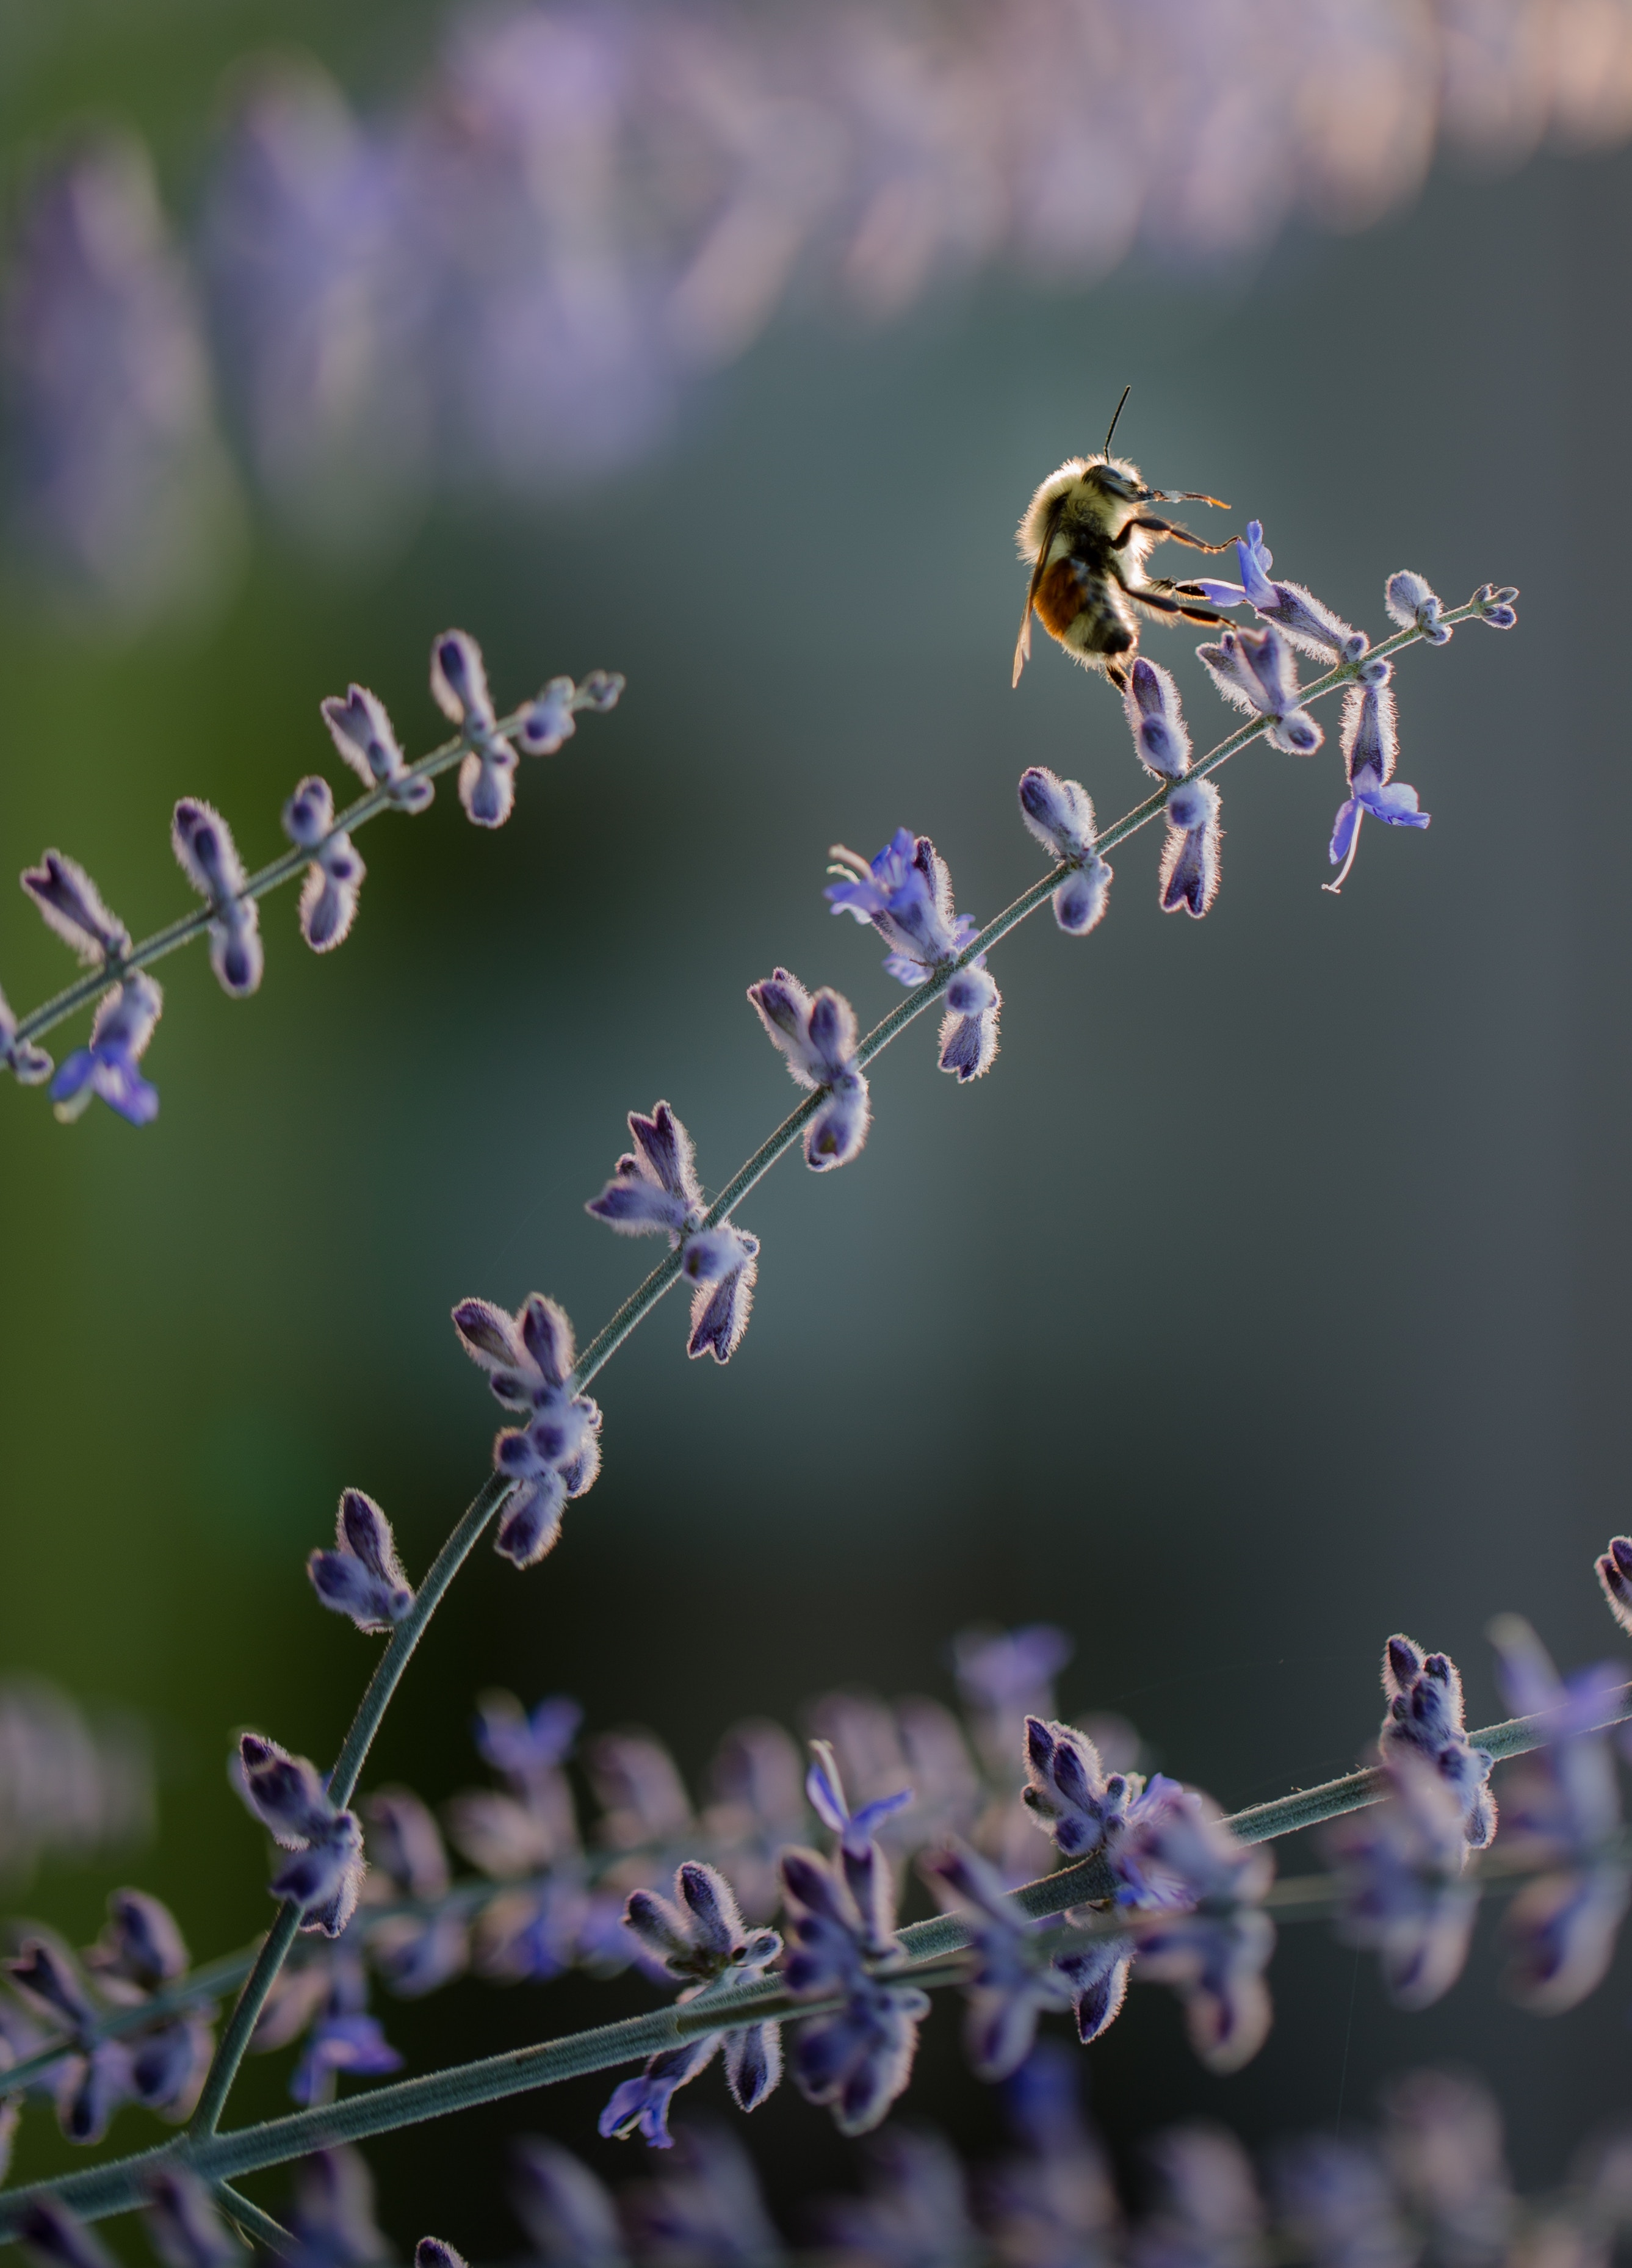 When in doubt - use lavender essential oil